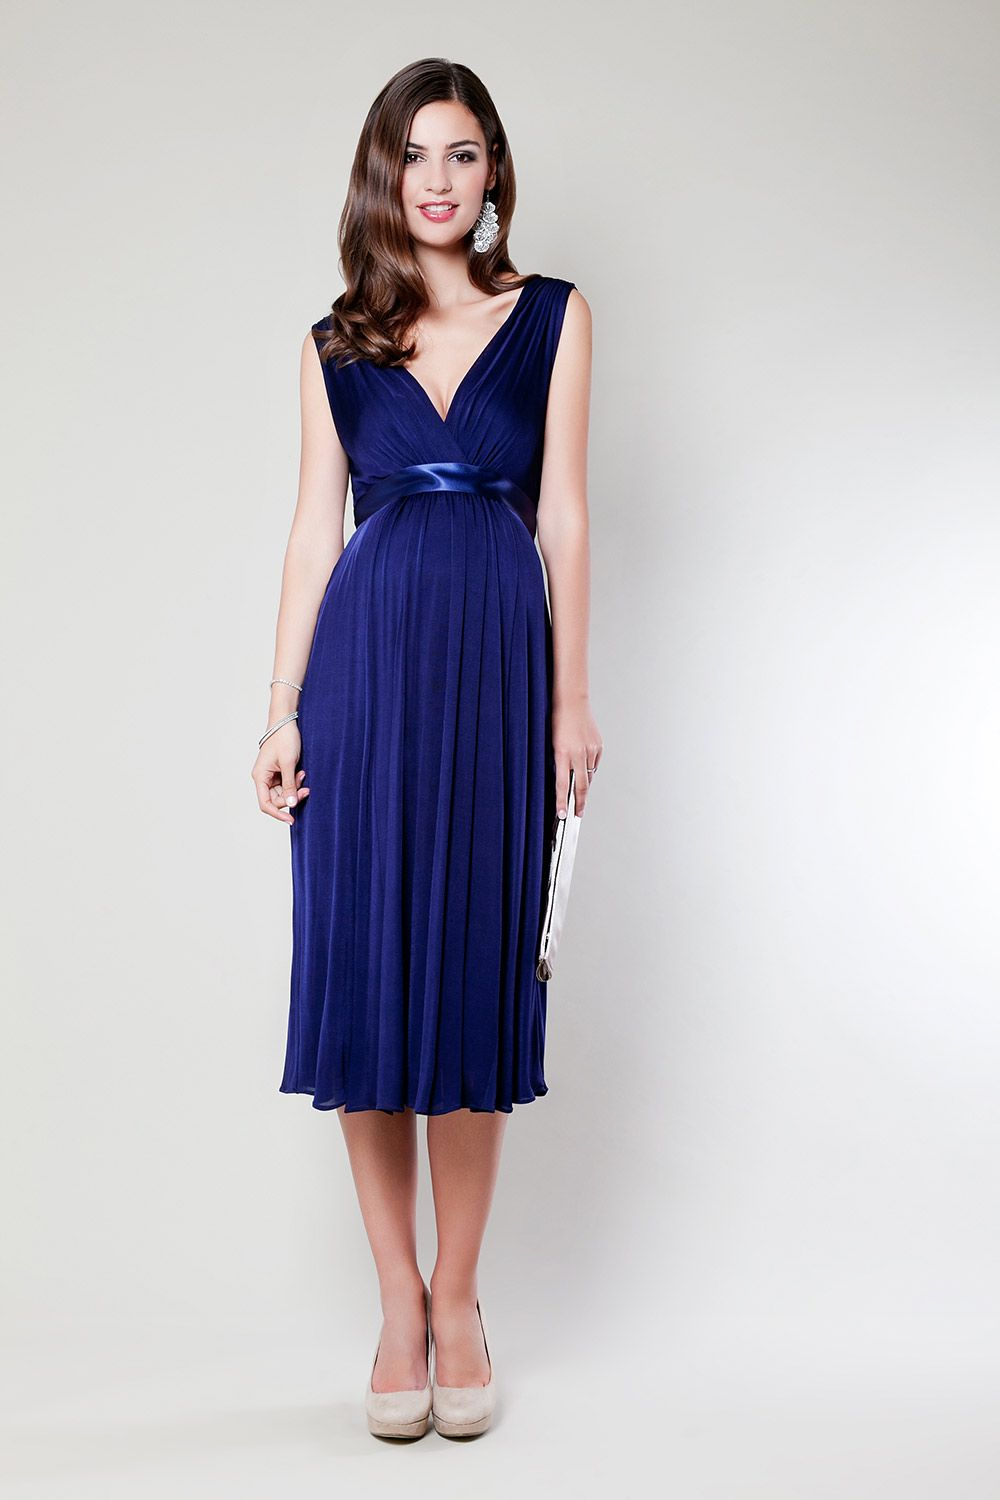 The best maternity wedding guest dresses wedding guest for Maternity dress to wear to a wedding as a guest